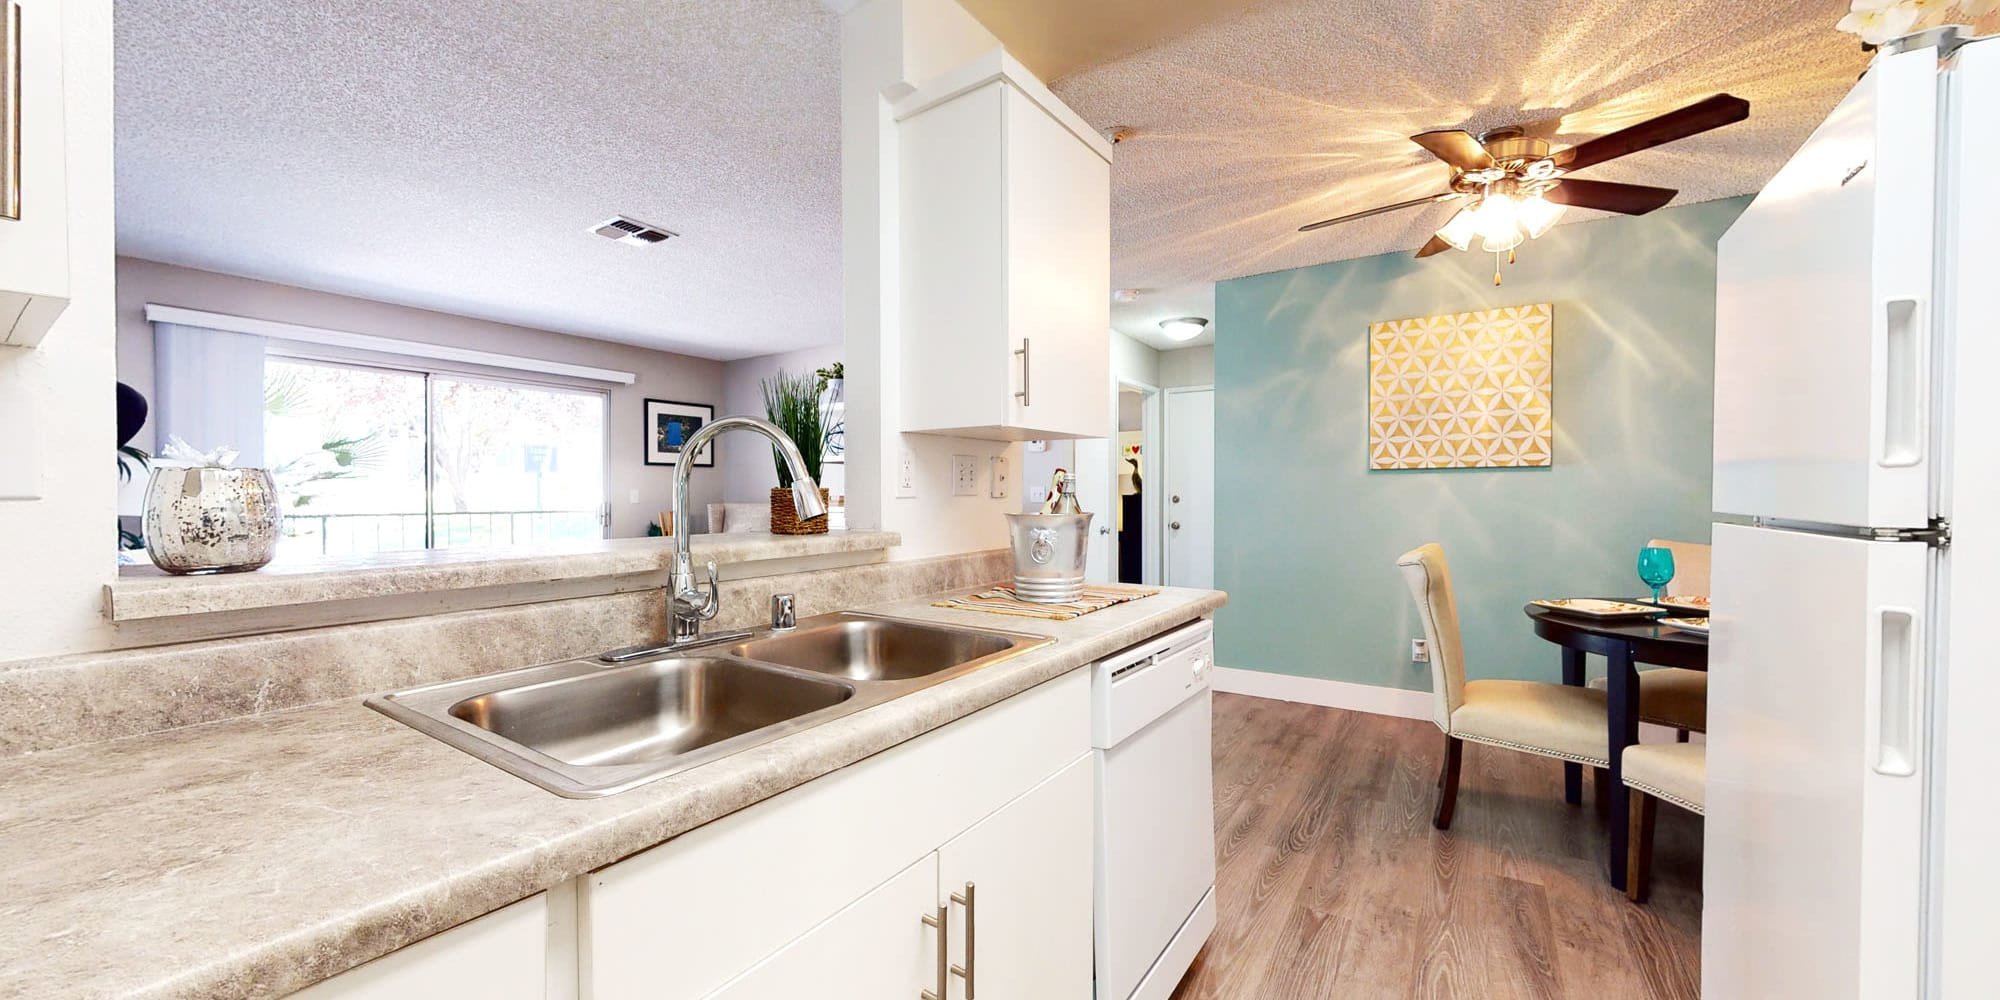 Spacious countertop with a dual-basin sink in a model apartment's kitchen at Mountain Vista in Victorville, California